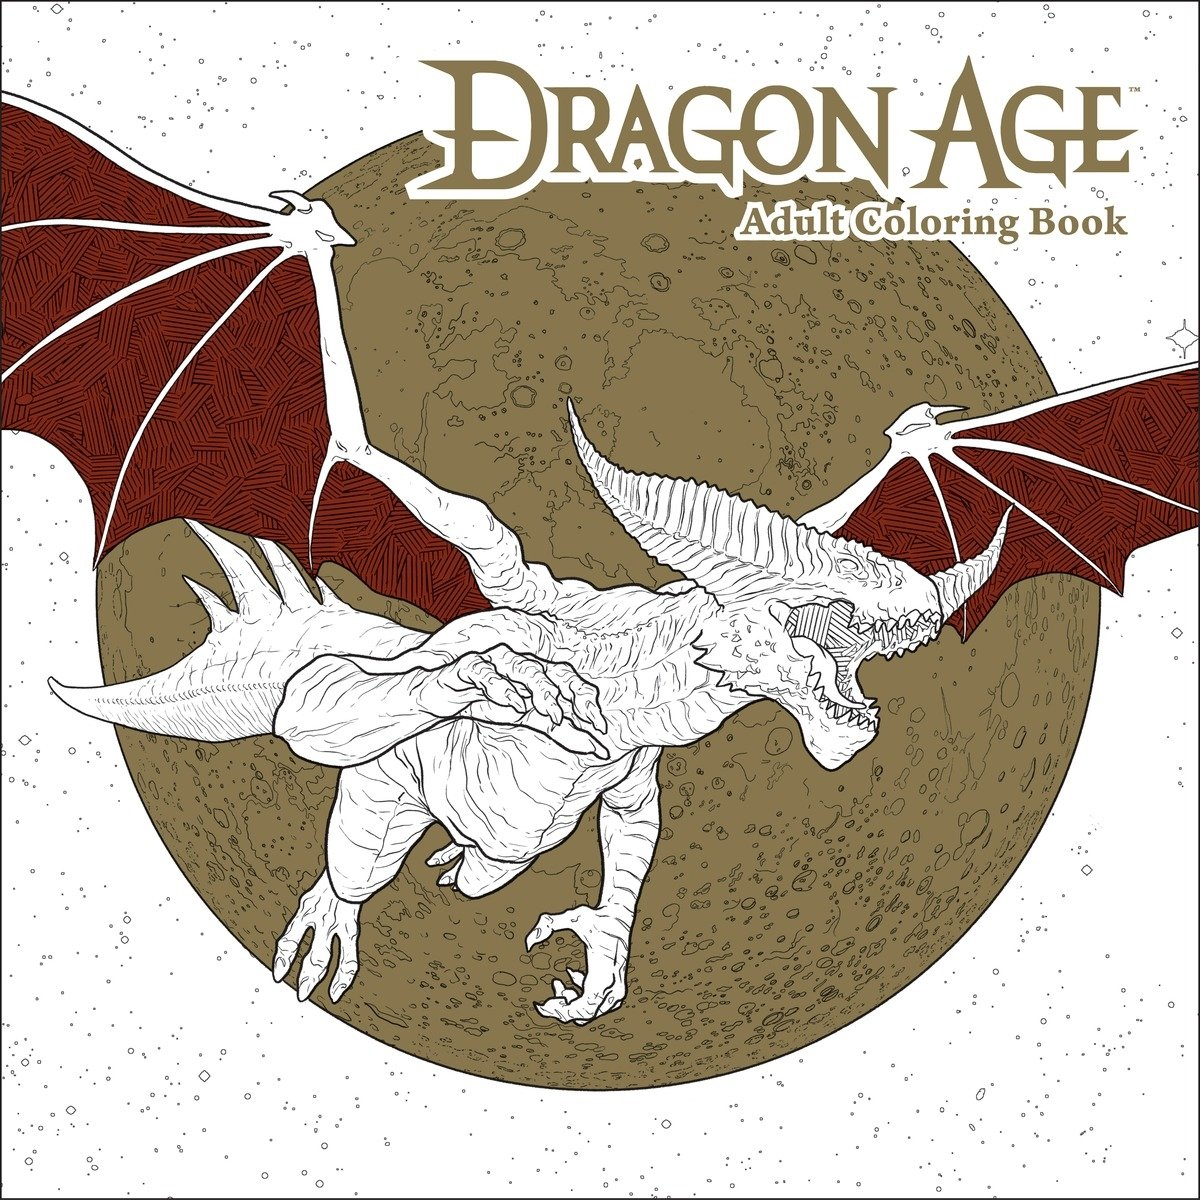 Dragon Age Adult Coloring Book by Dark Horse